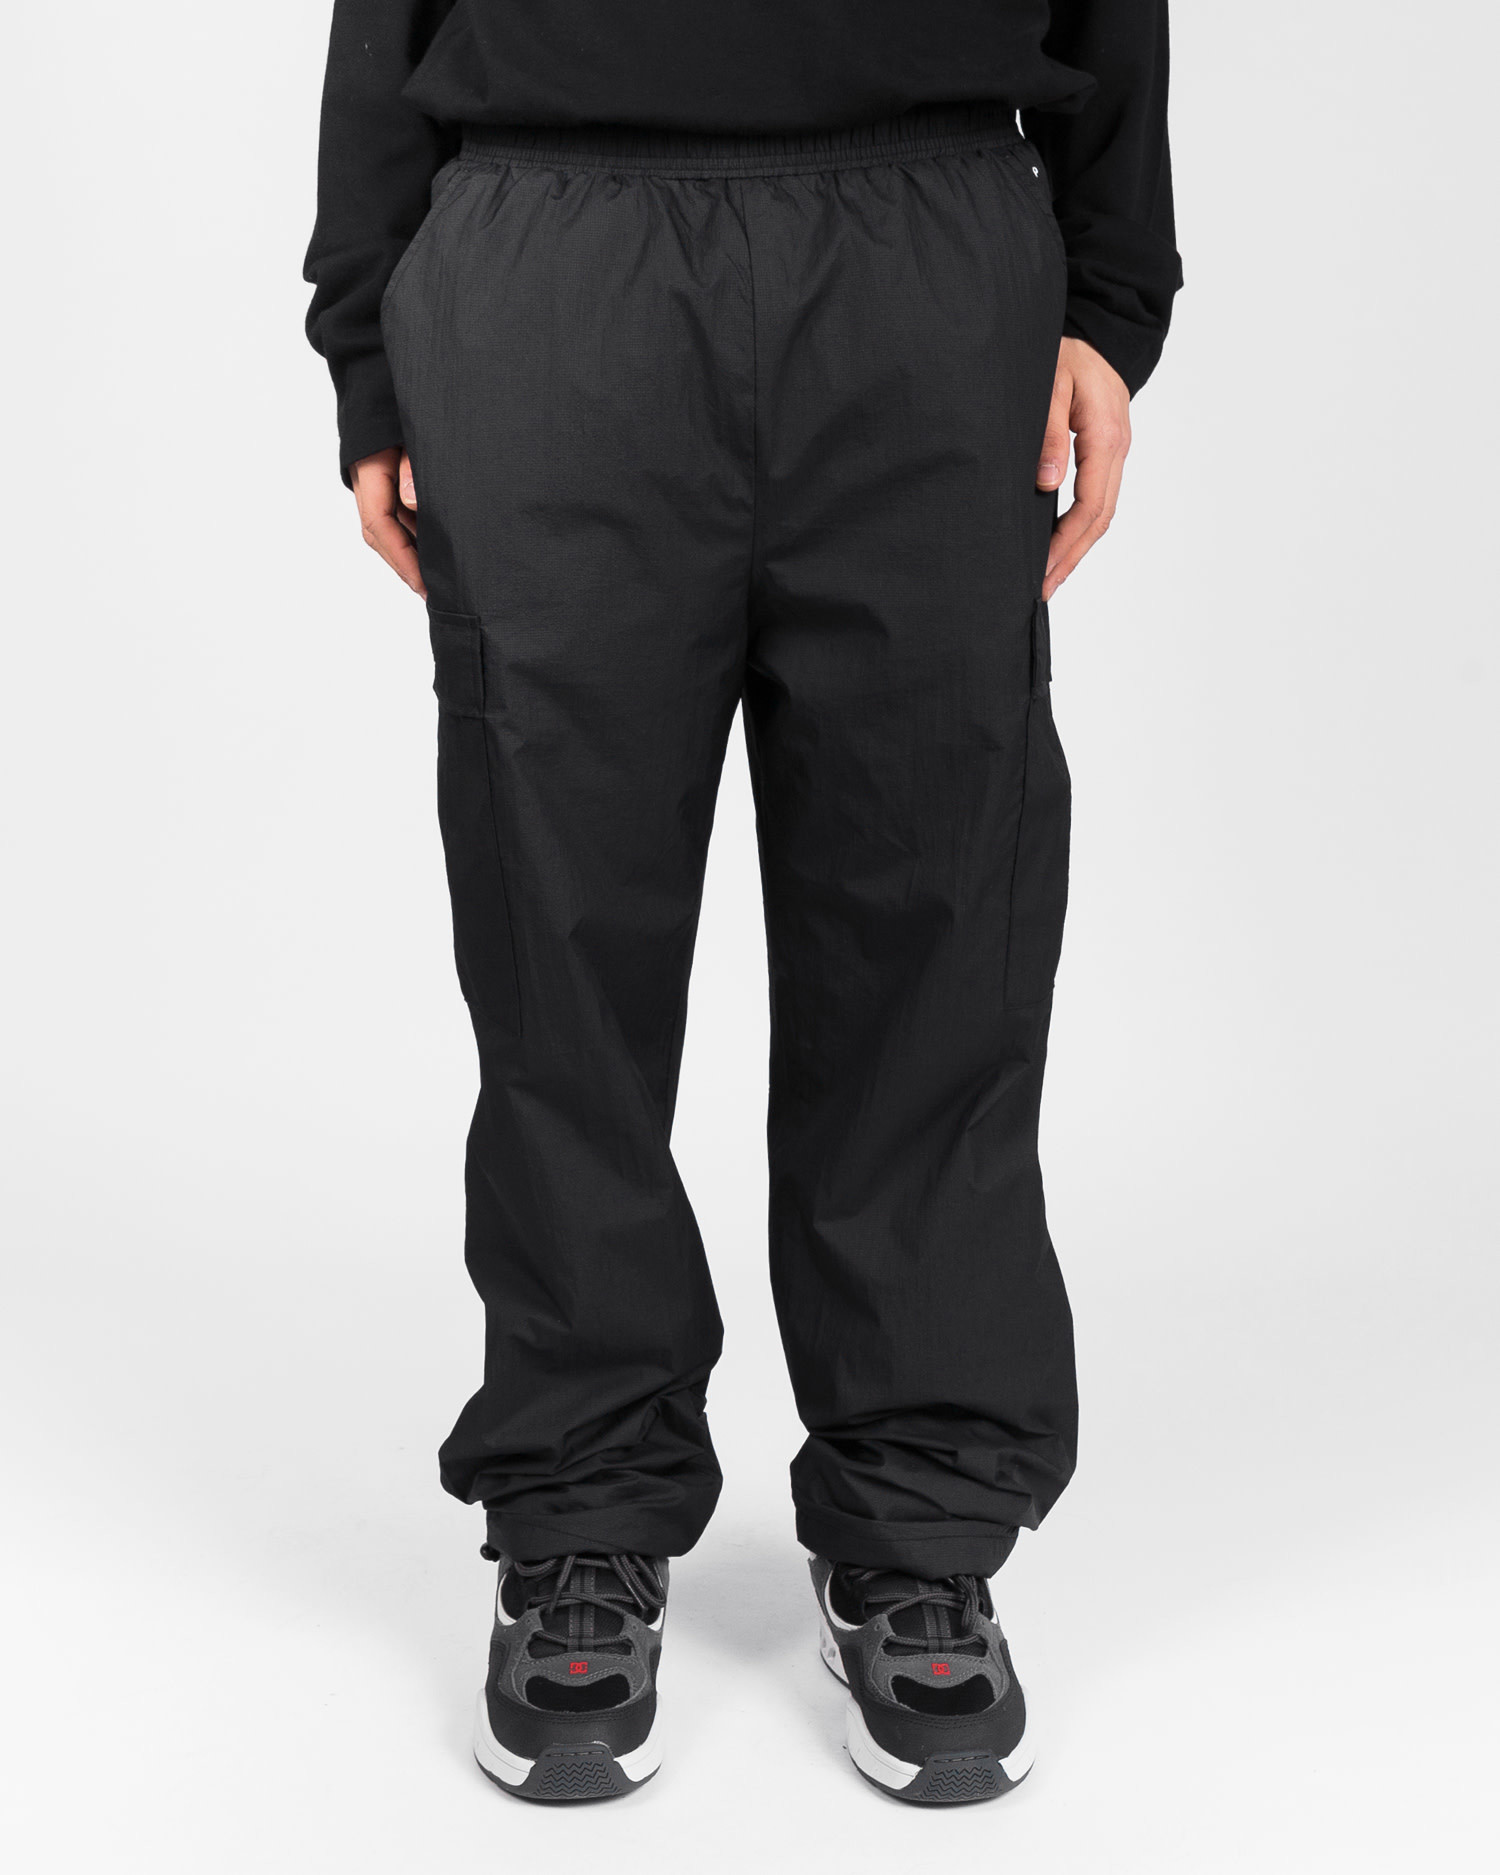 Pop Trading Cargo Track Pant Black